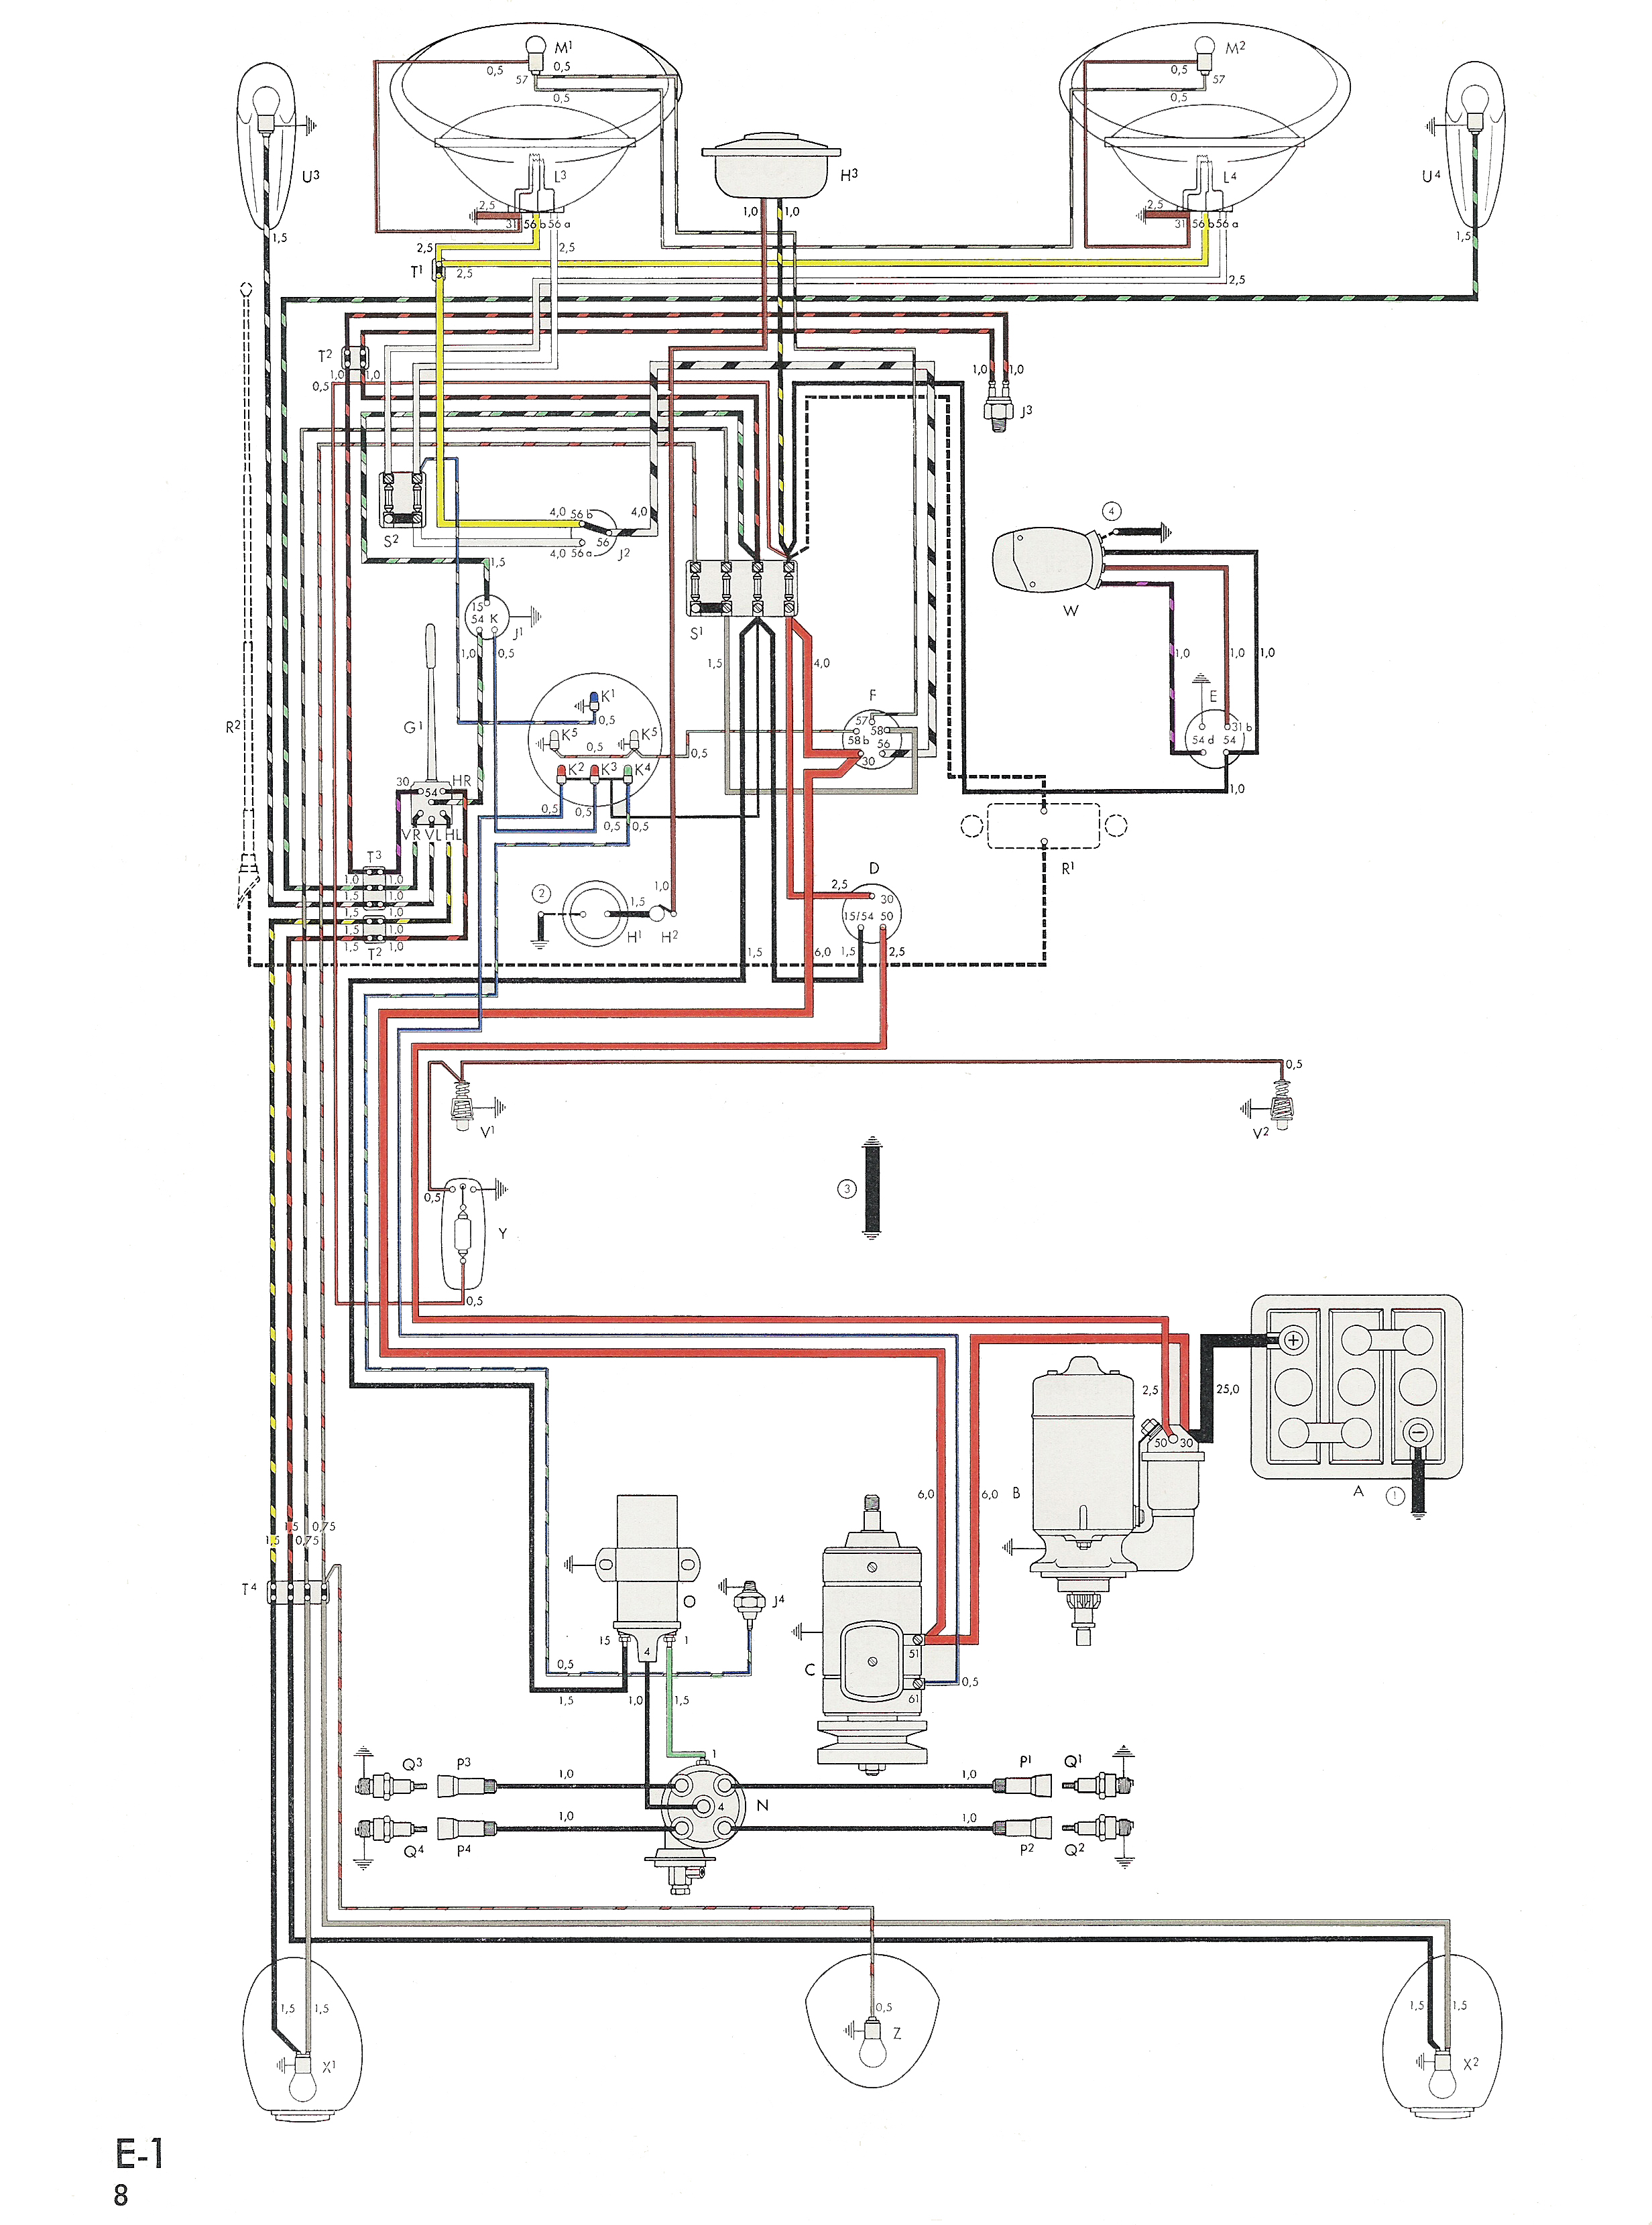 2003 beetle wiring diagram